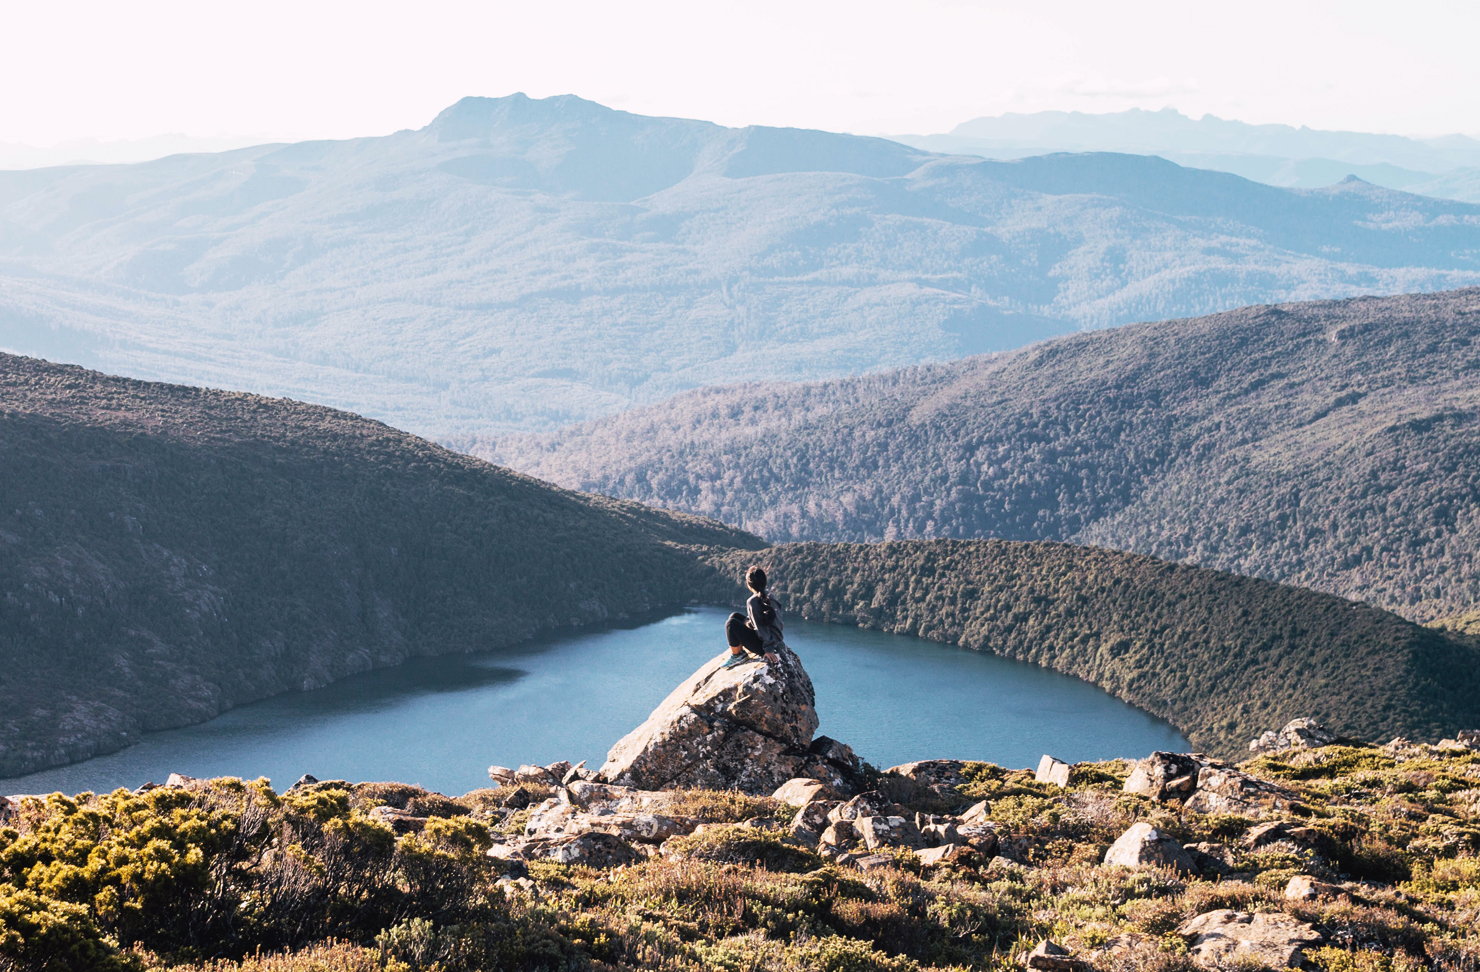 A woman takes in the view of rolling hills and a lake, from a mountain top in Tasmania.